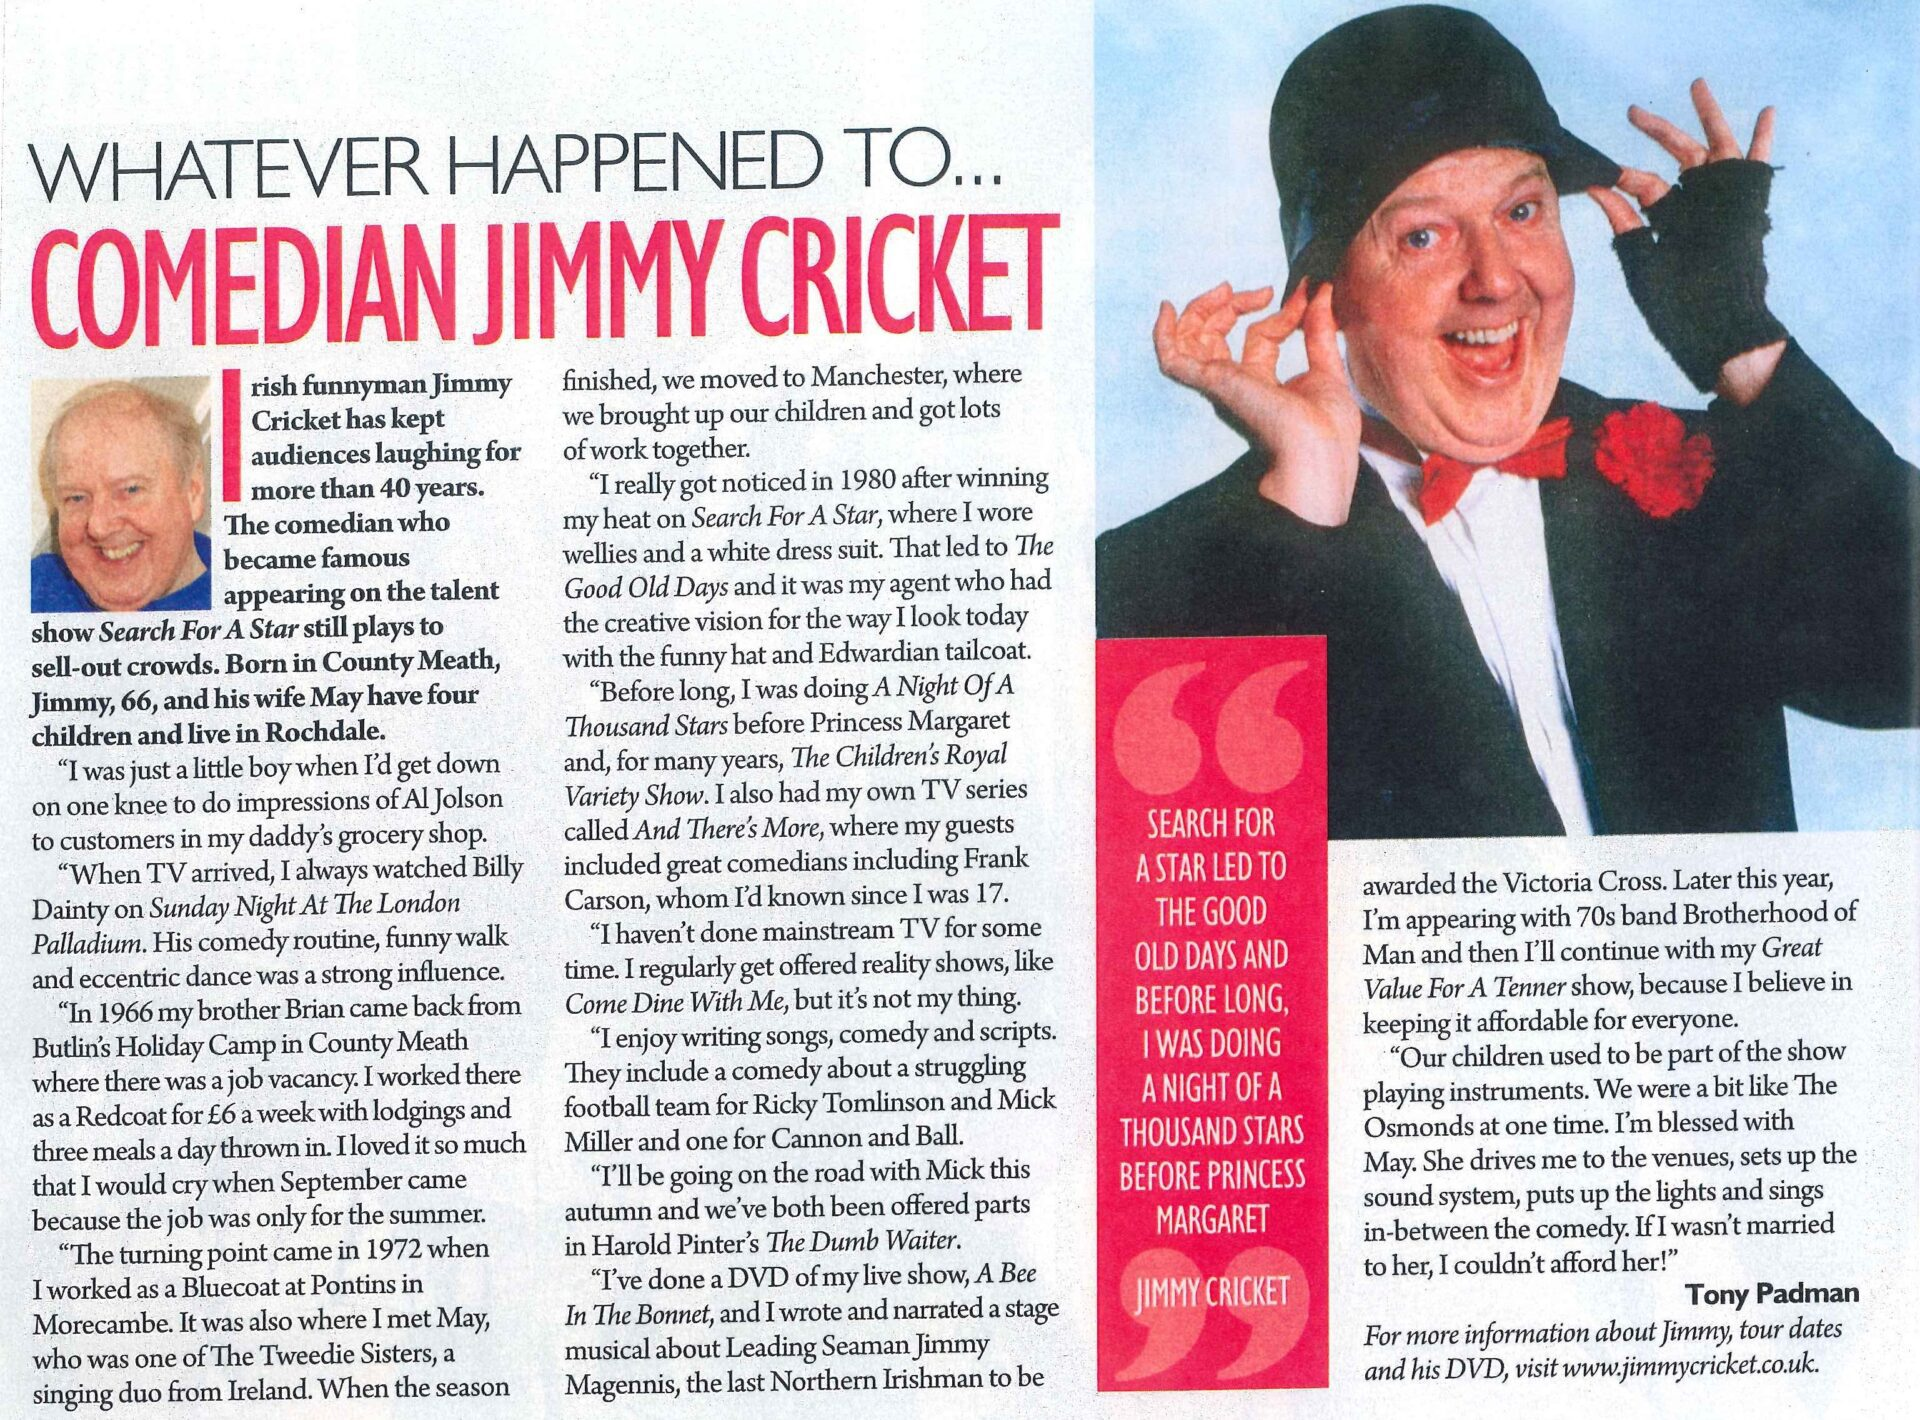 Jimmy Cricket feature in the Daily Express